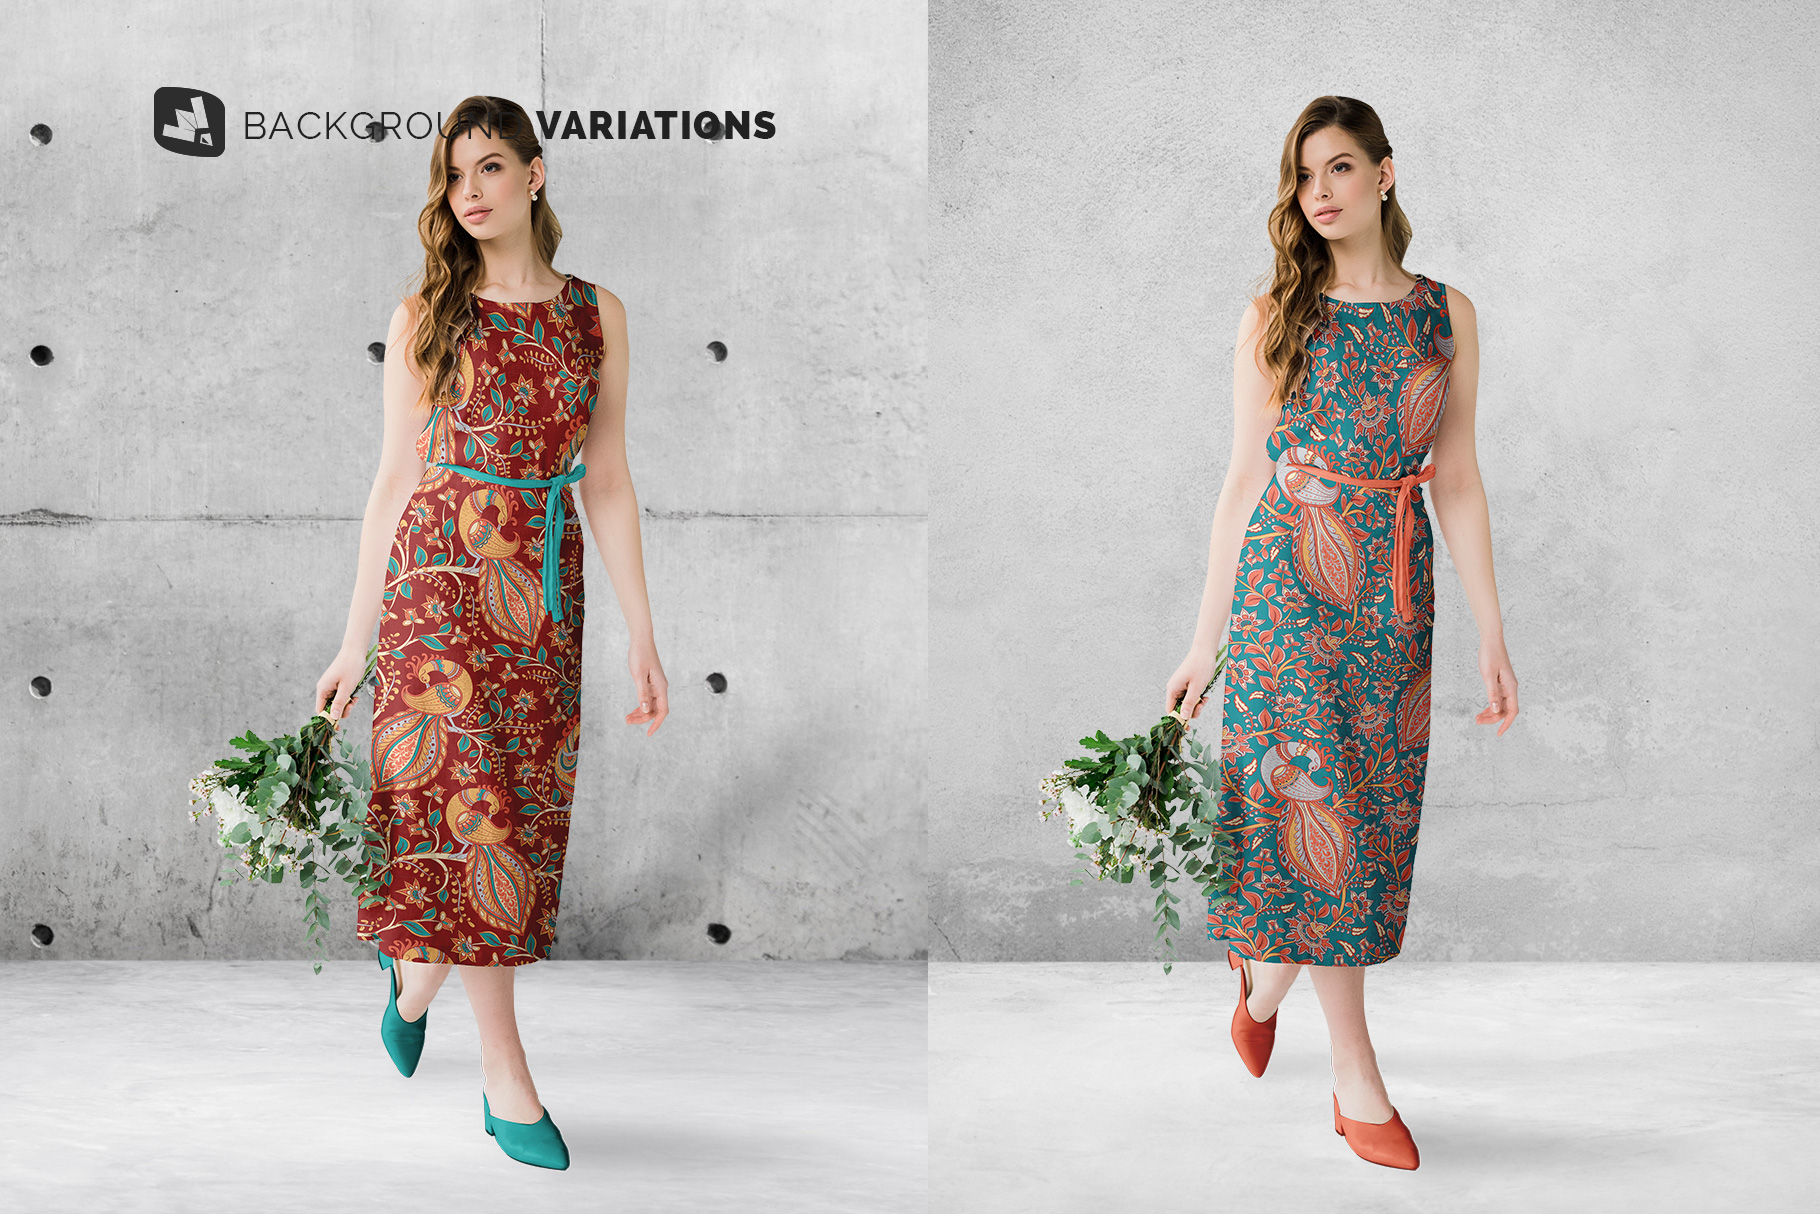 background options of the female cotton summer dress mockup